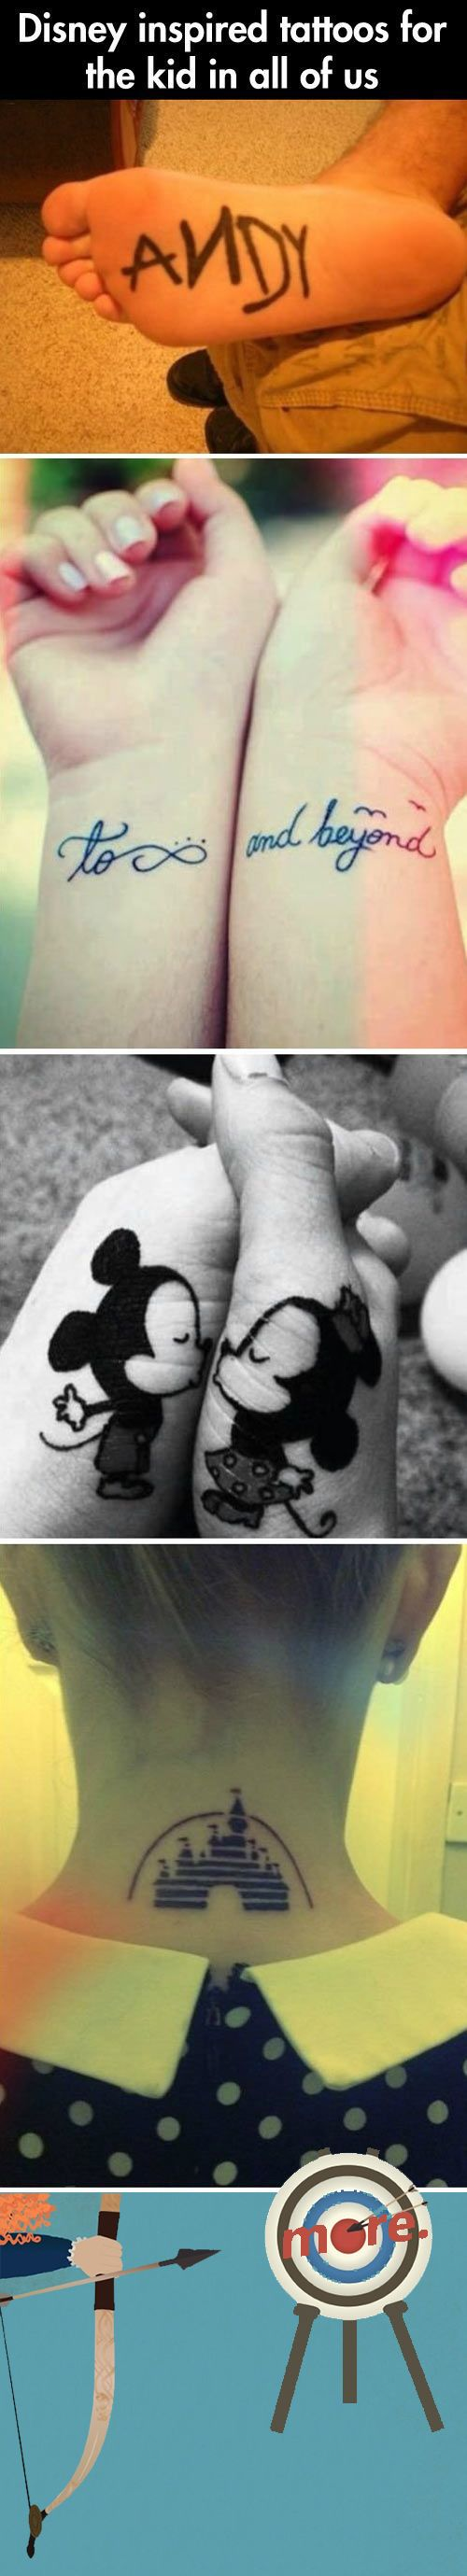 Cute Disney Tattoo You Need To See